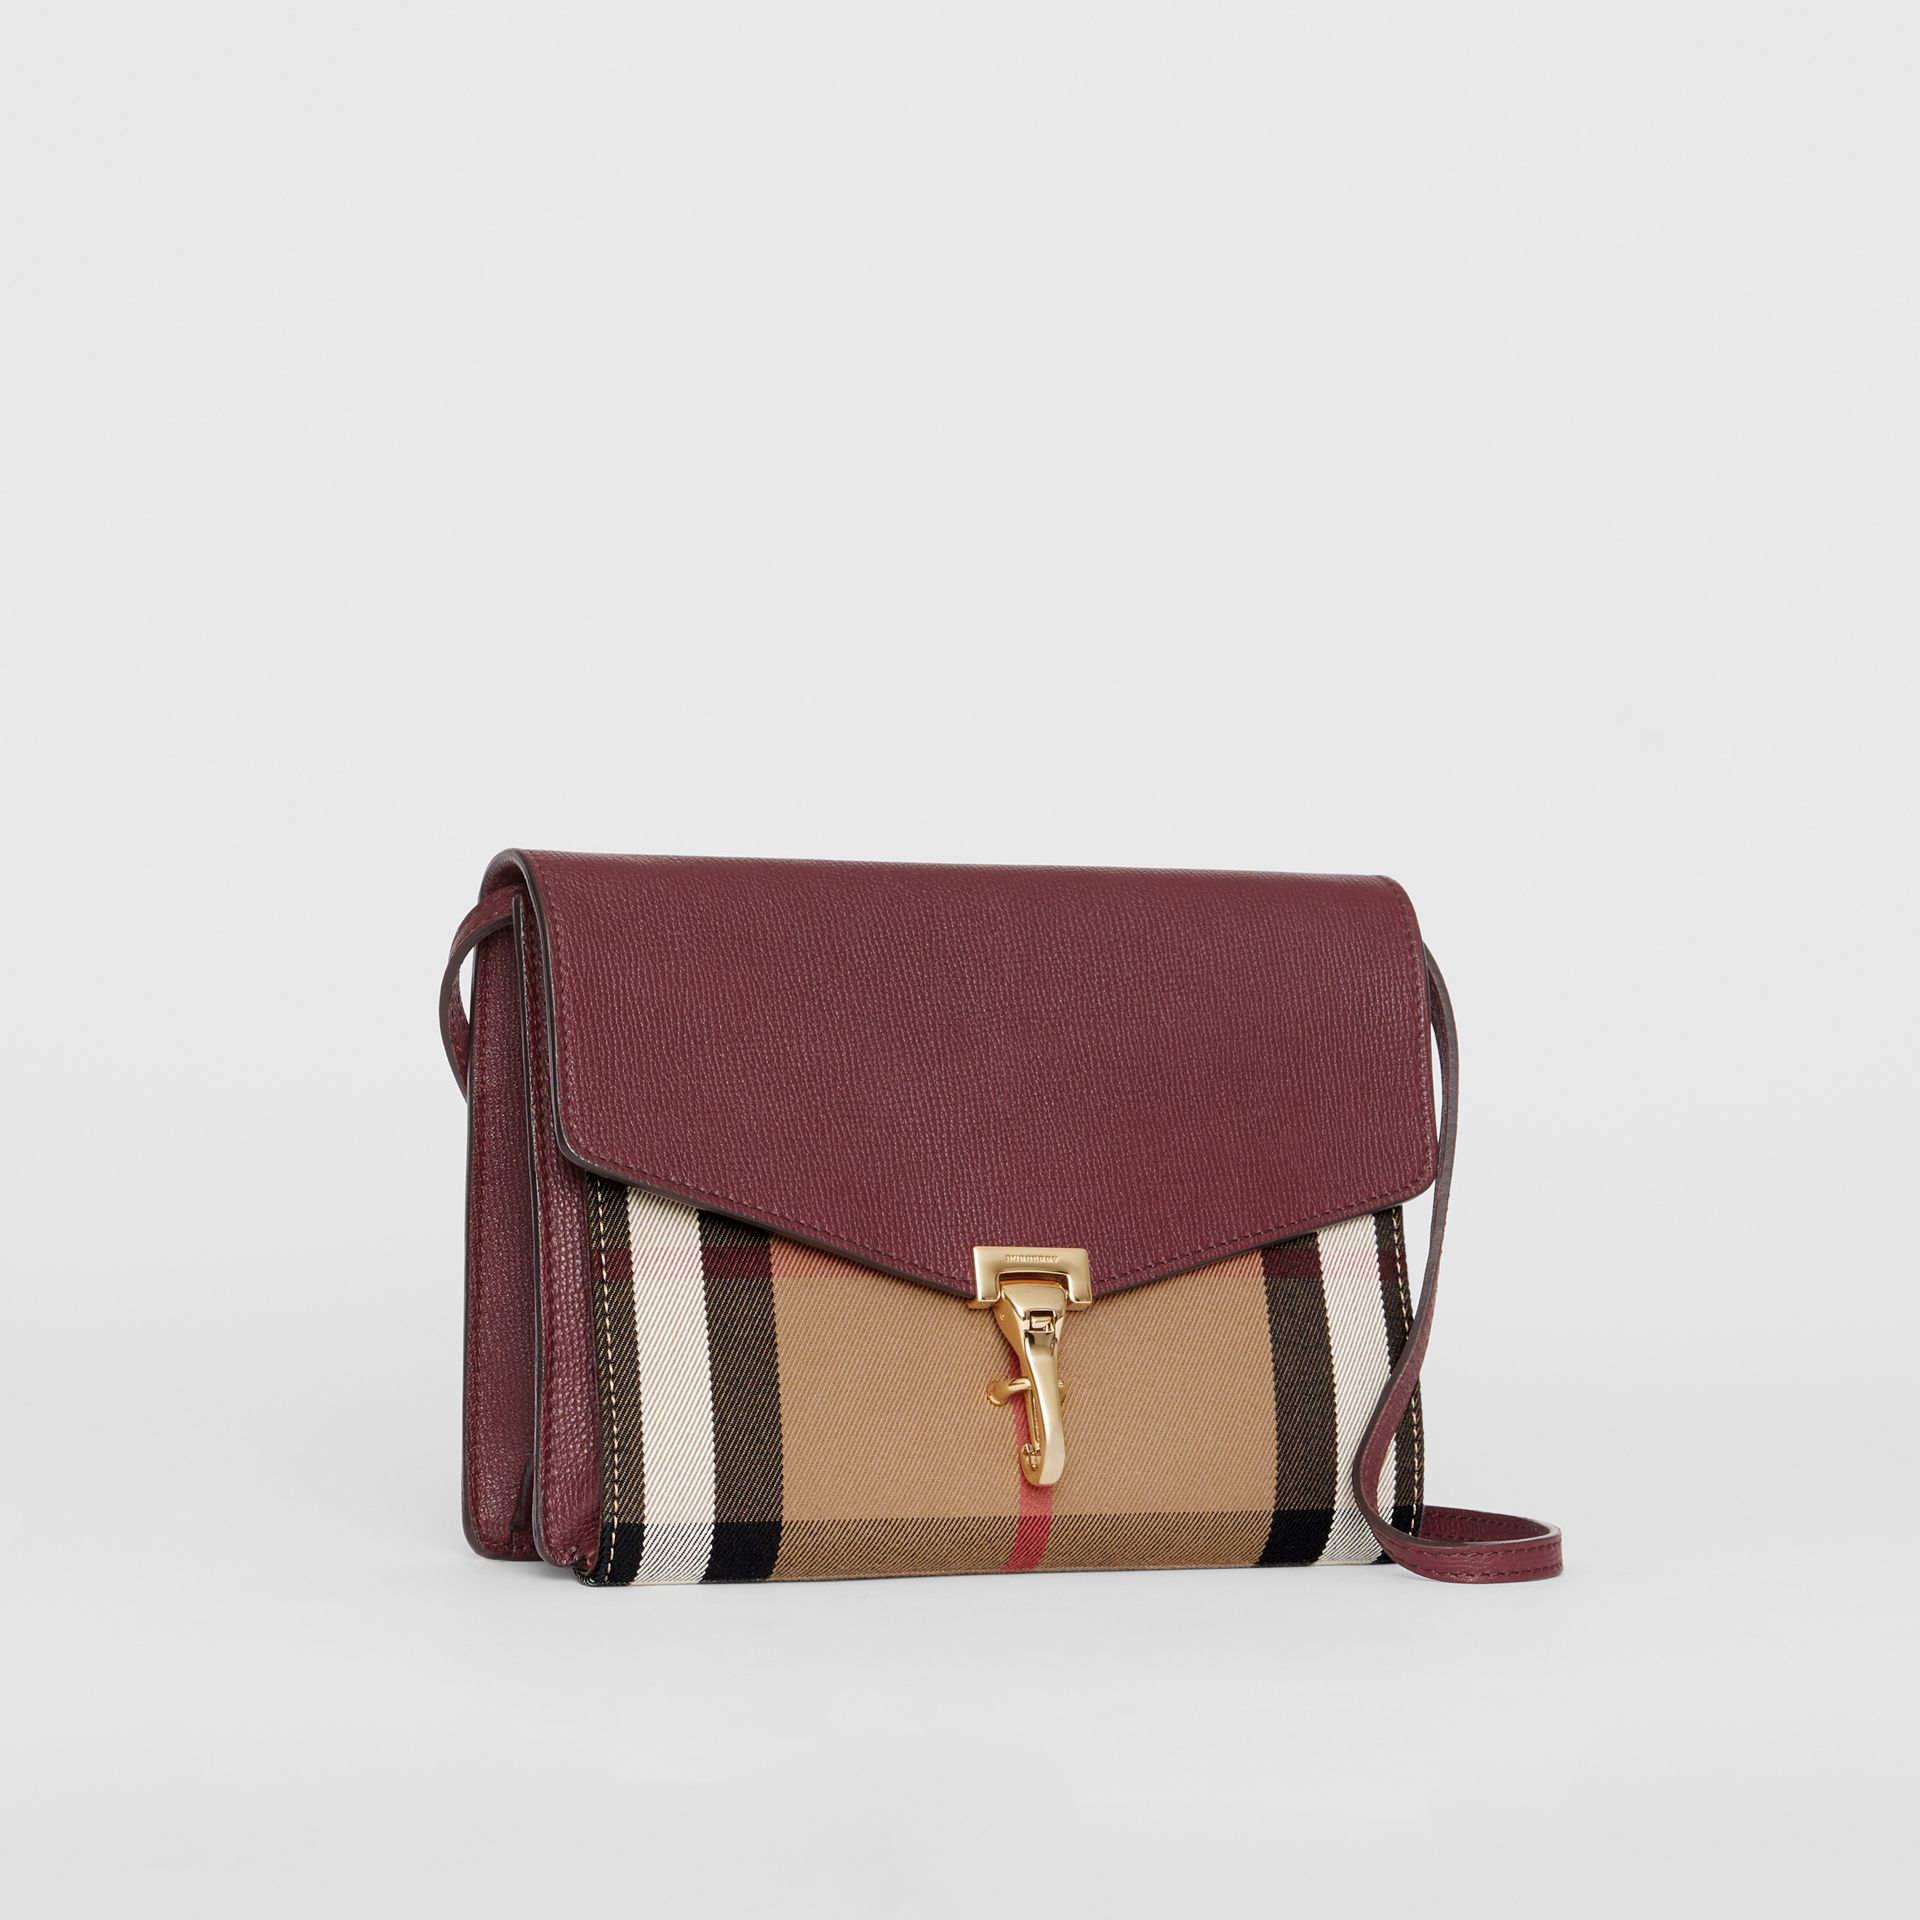 Small Leather and House Check Crossbody Bag in Mahogany Red - Women | Burberry - gallery image 6